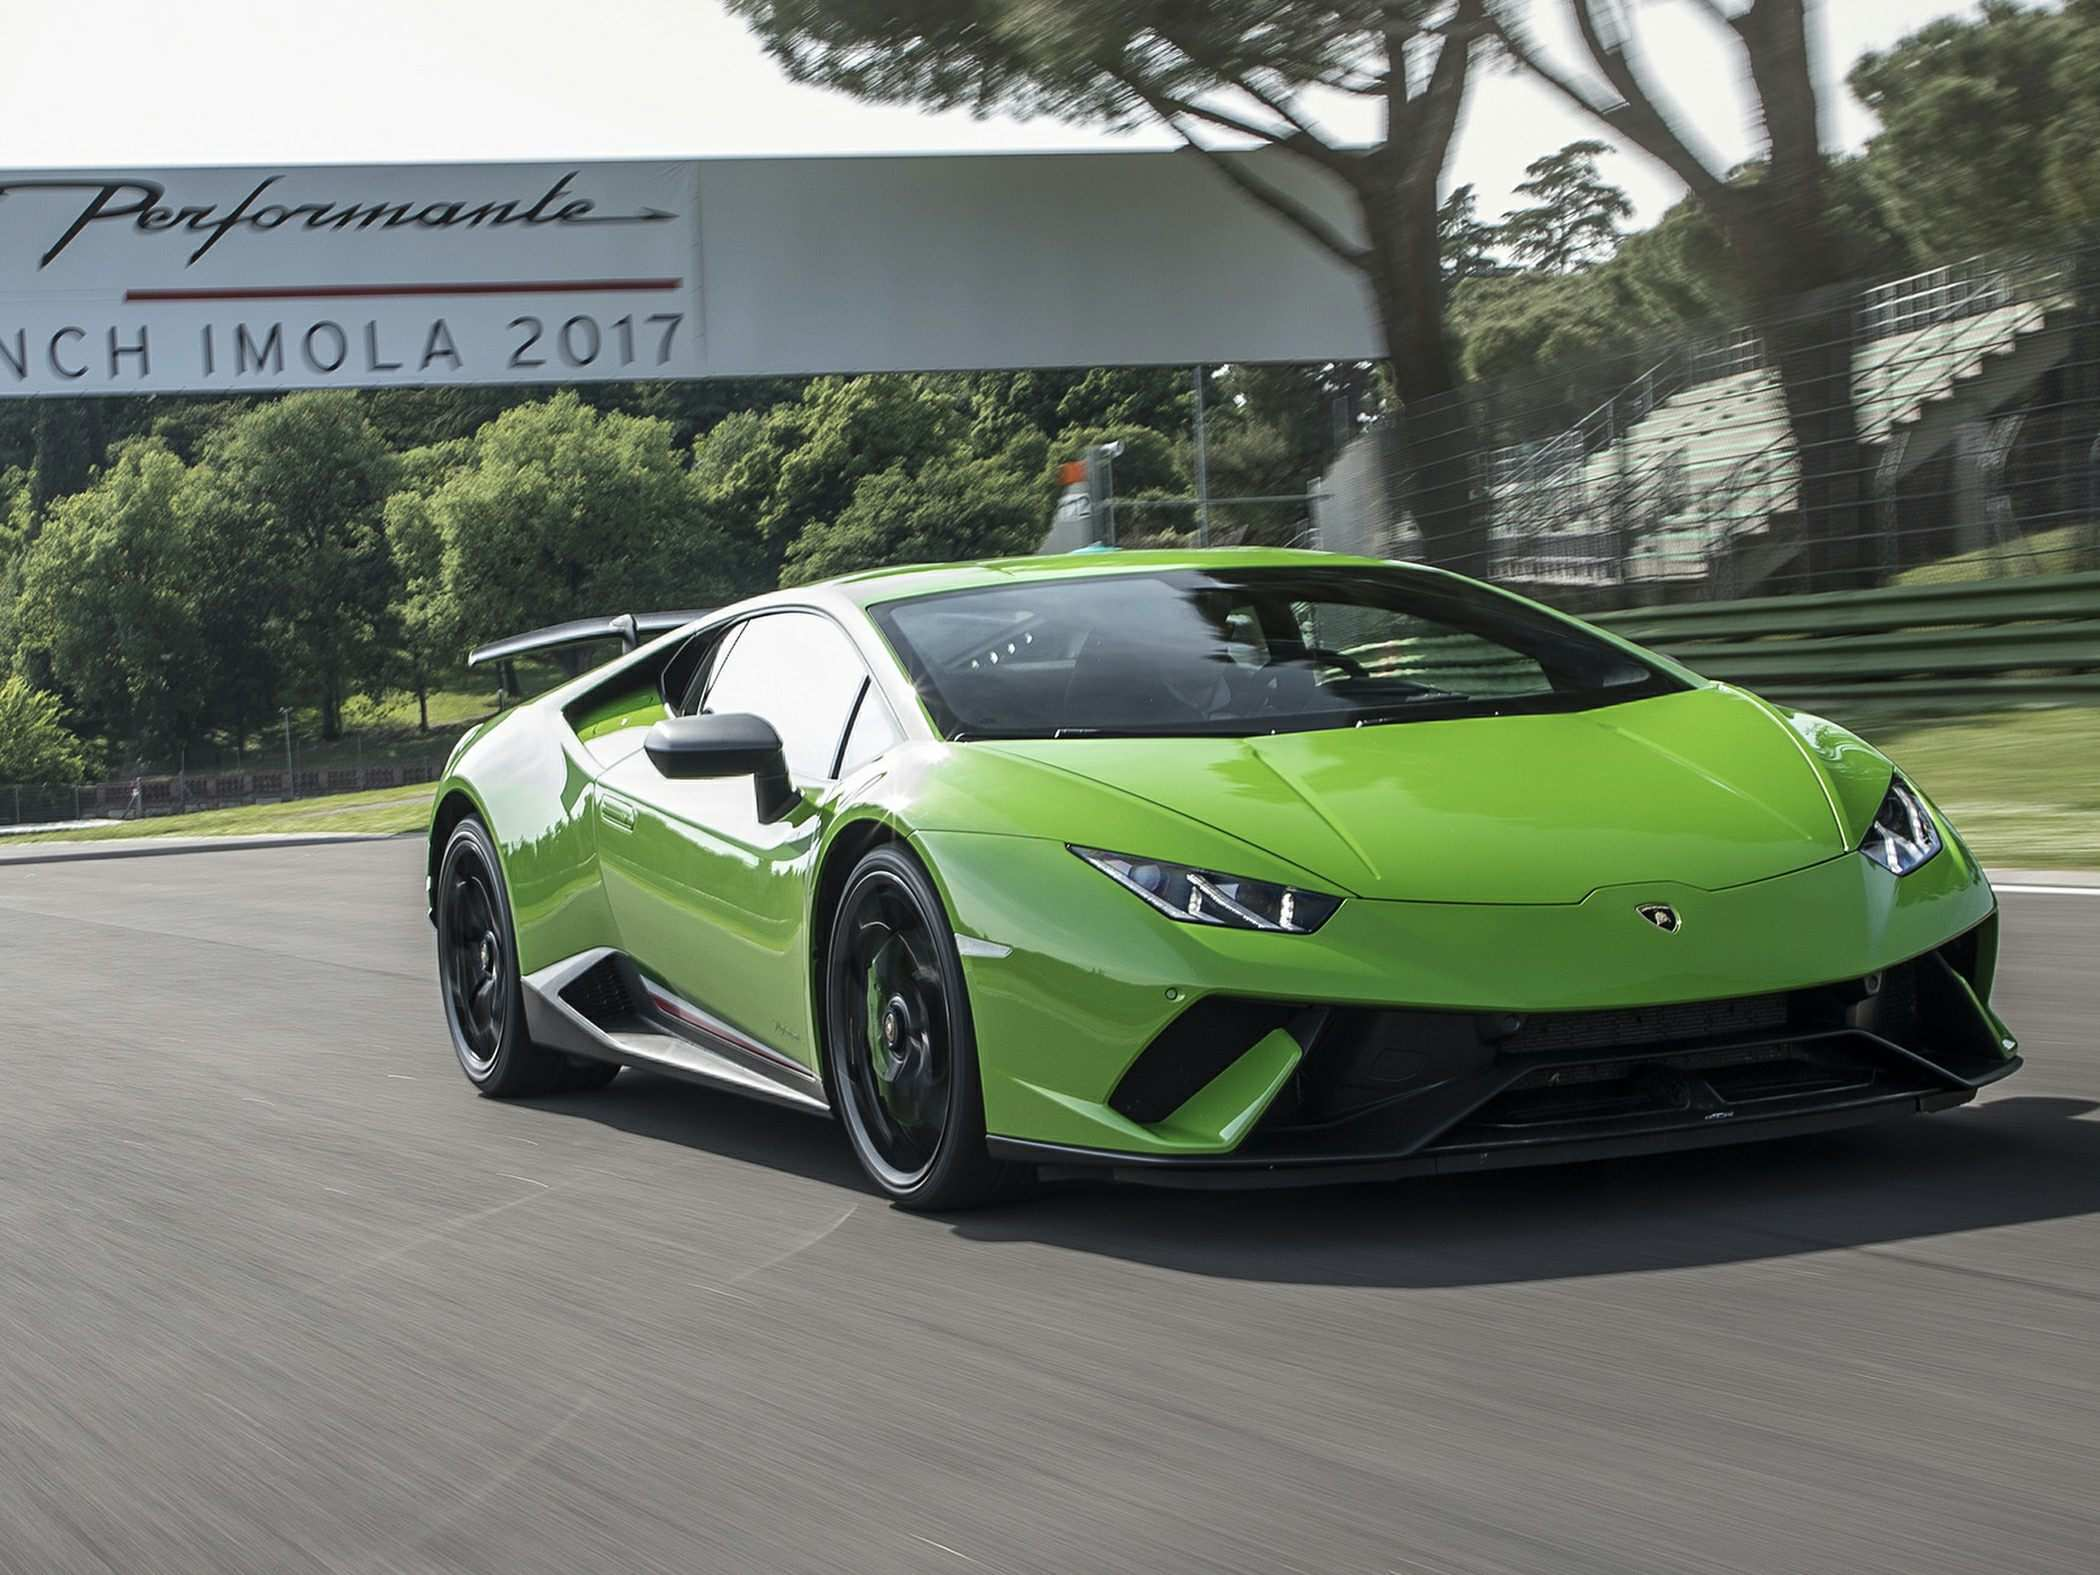 61 New 2019 Lamborghini Performante First Drive